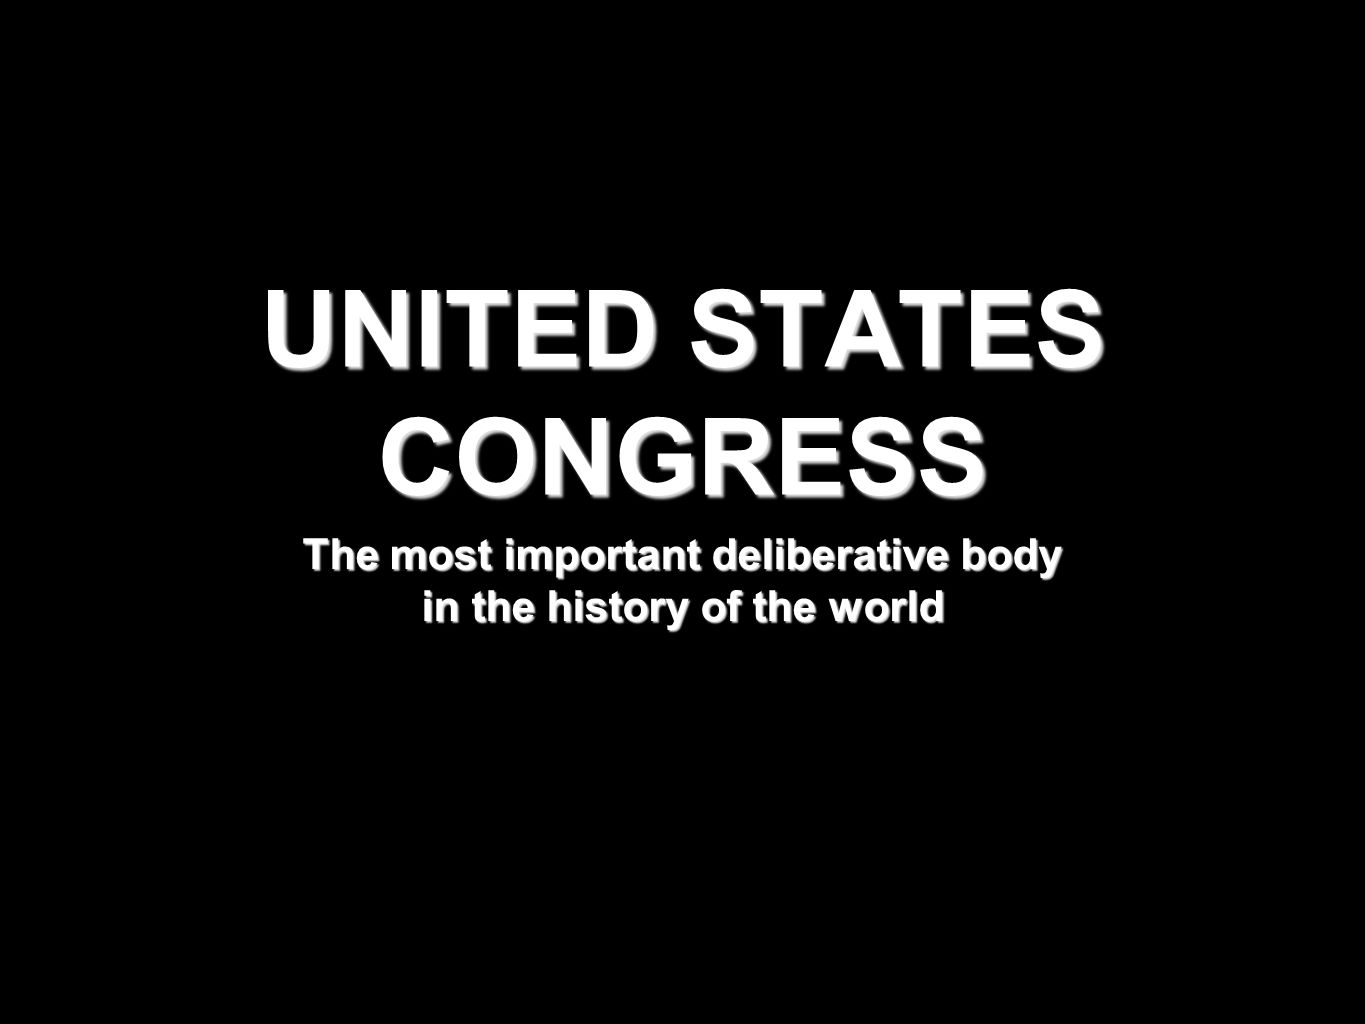 UNITED STATES CONGRESS The most important deliberative body in the history of the world